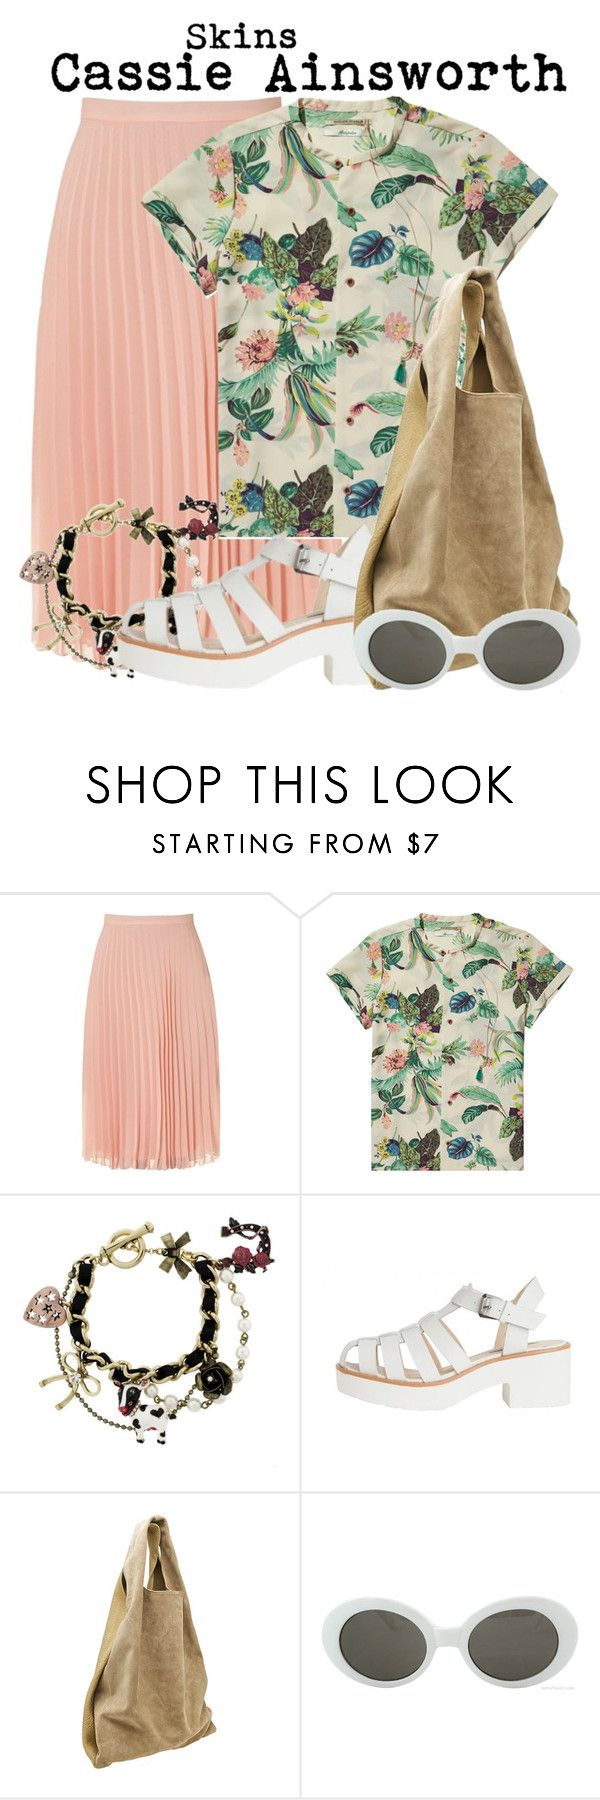 """""""Skins- Cassie Ainsworth"""" by darcy-watson ❤ liked on Polyvore featuring Jane Norman, Scotch & Soda, Betsey Johnson, Alexander Wang, Retrò, cassieainsworth and skins"""